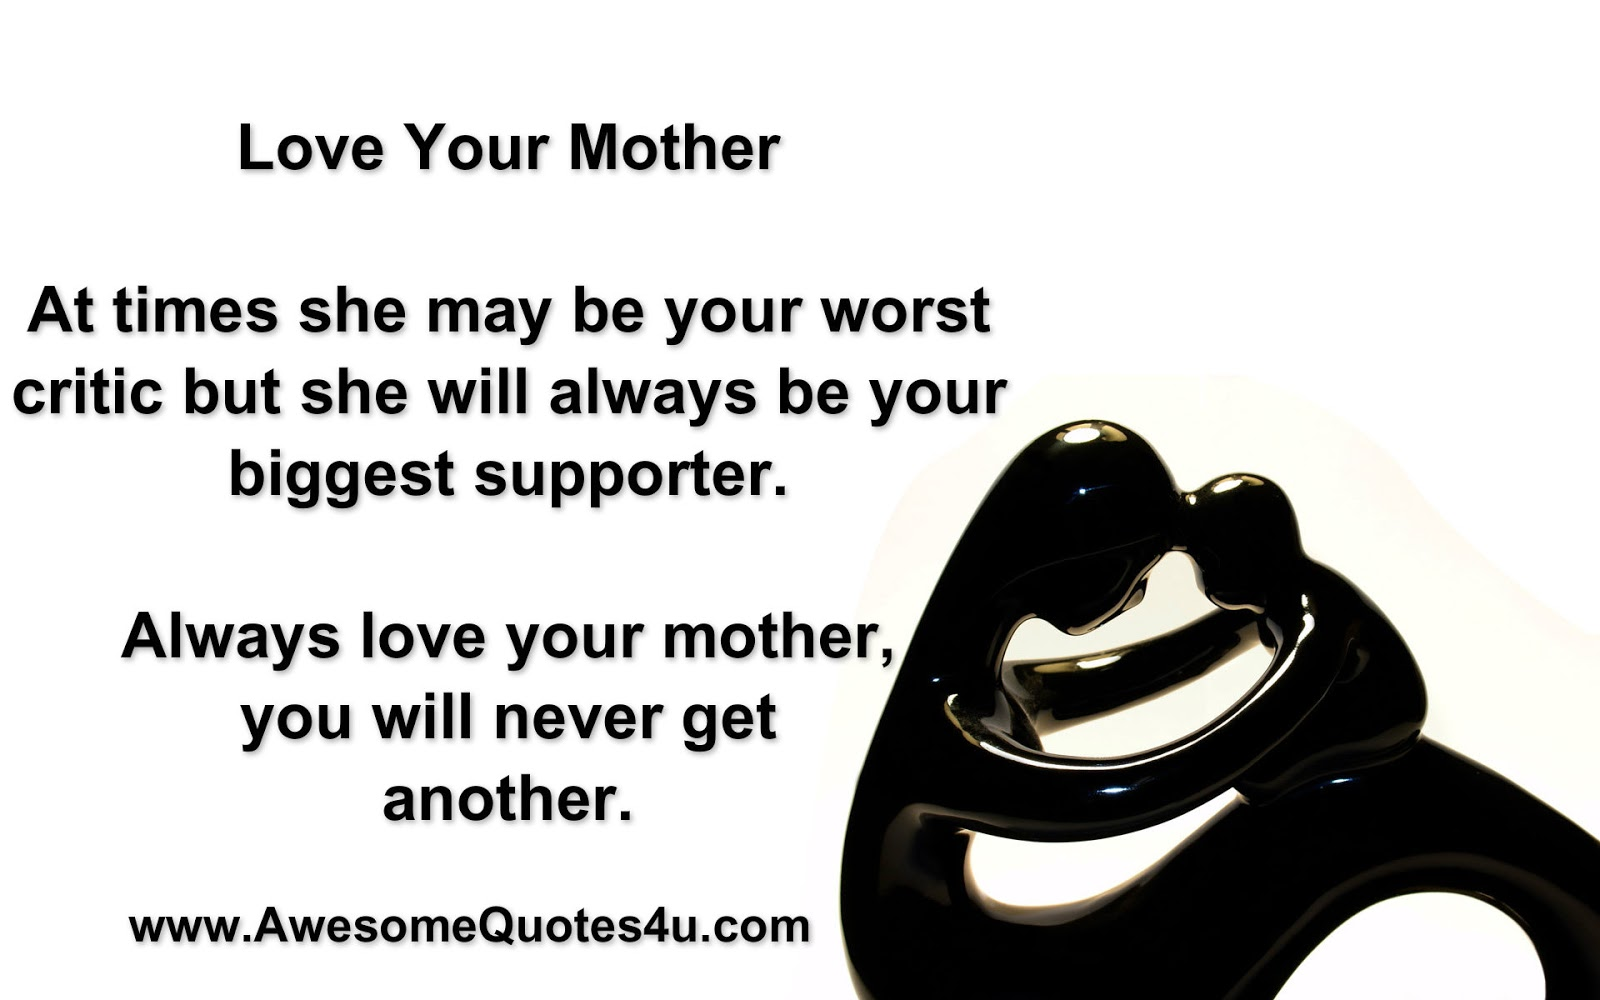 quotes about your mother quotesgram